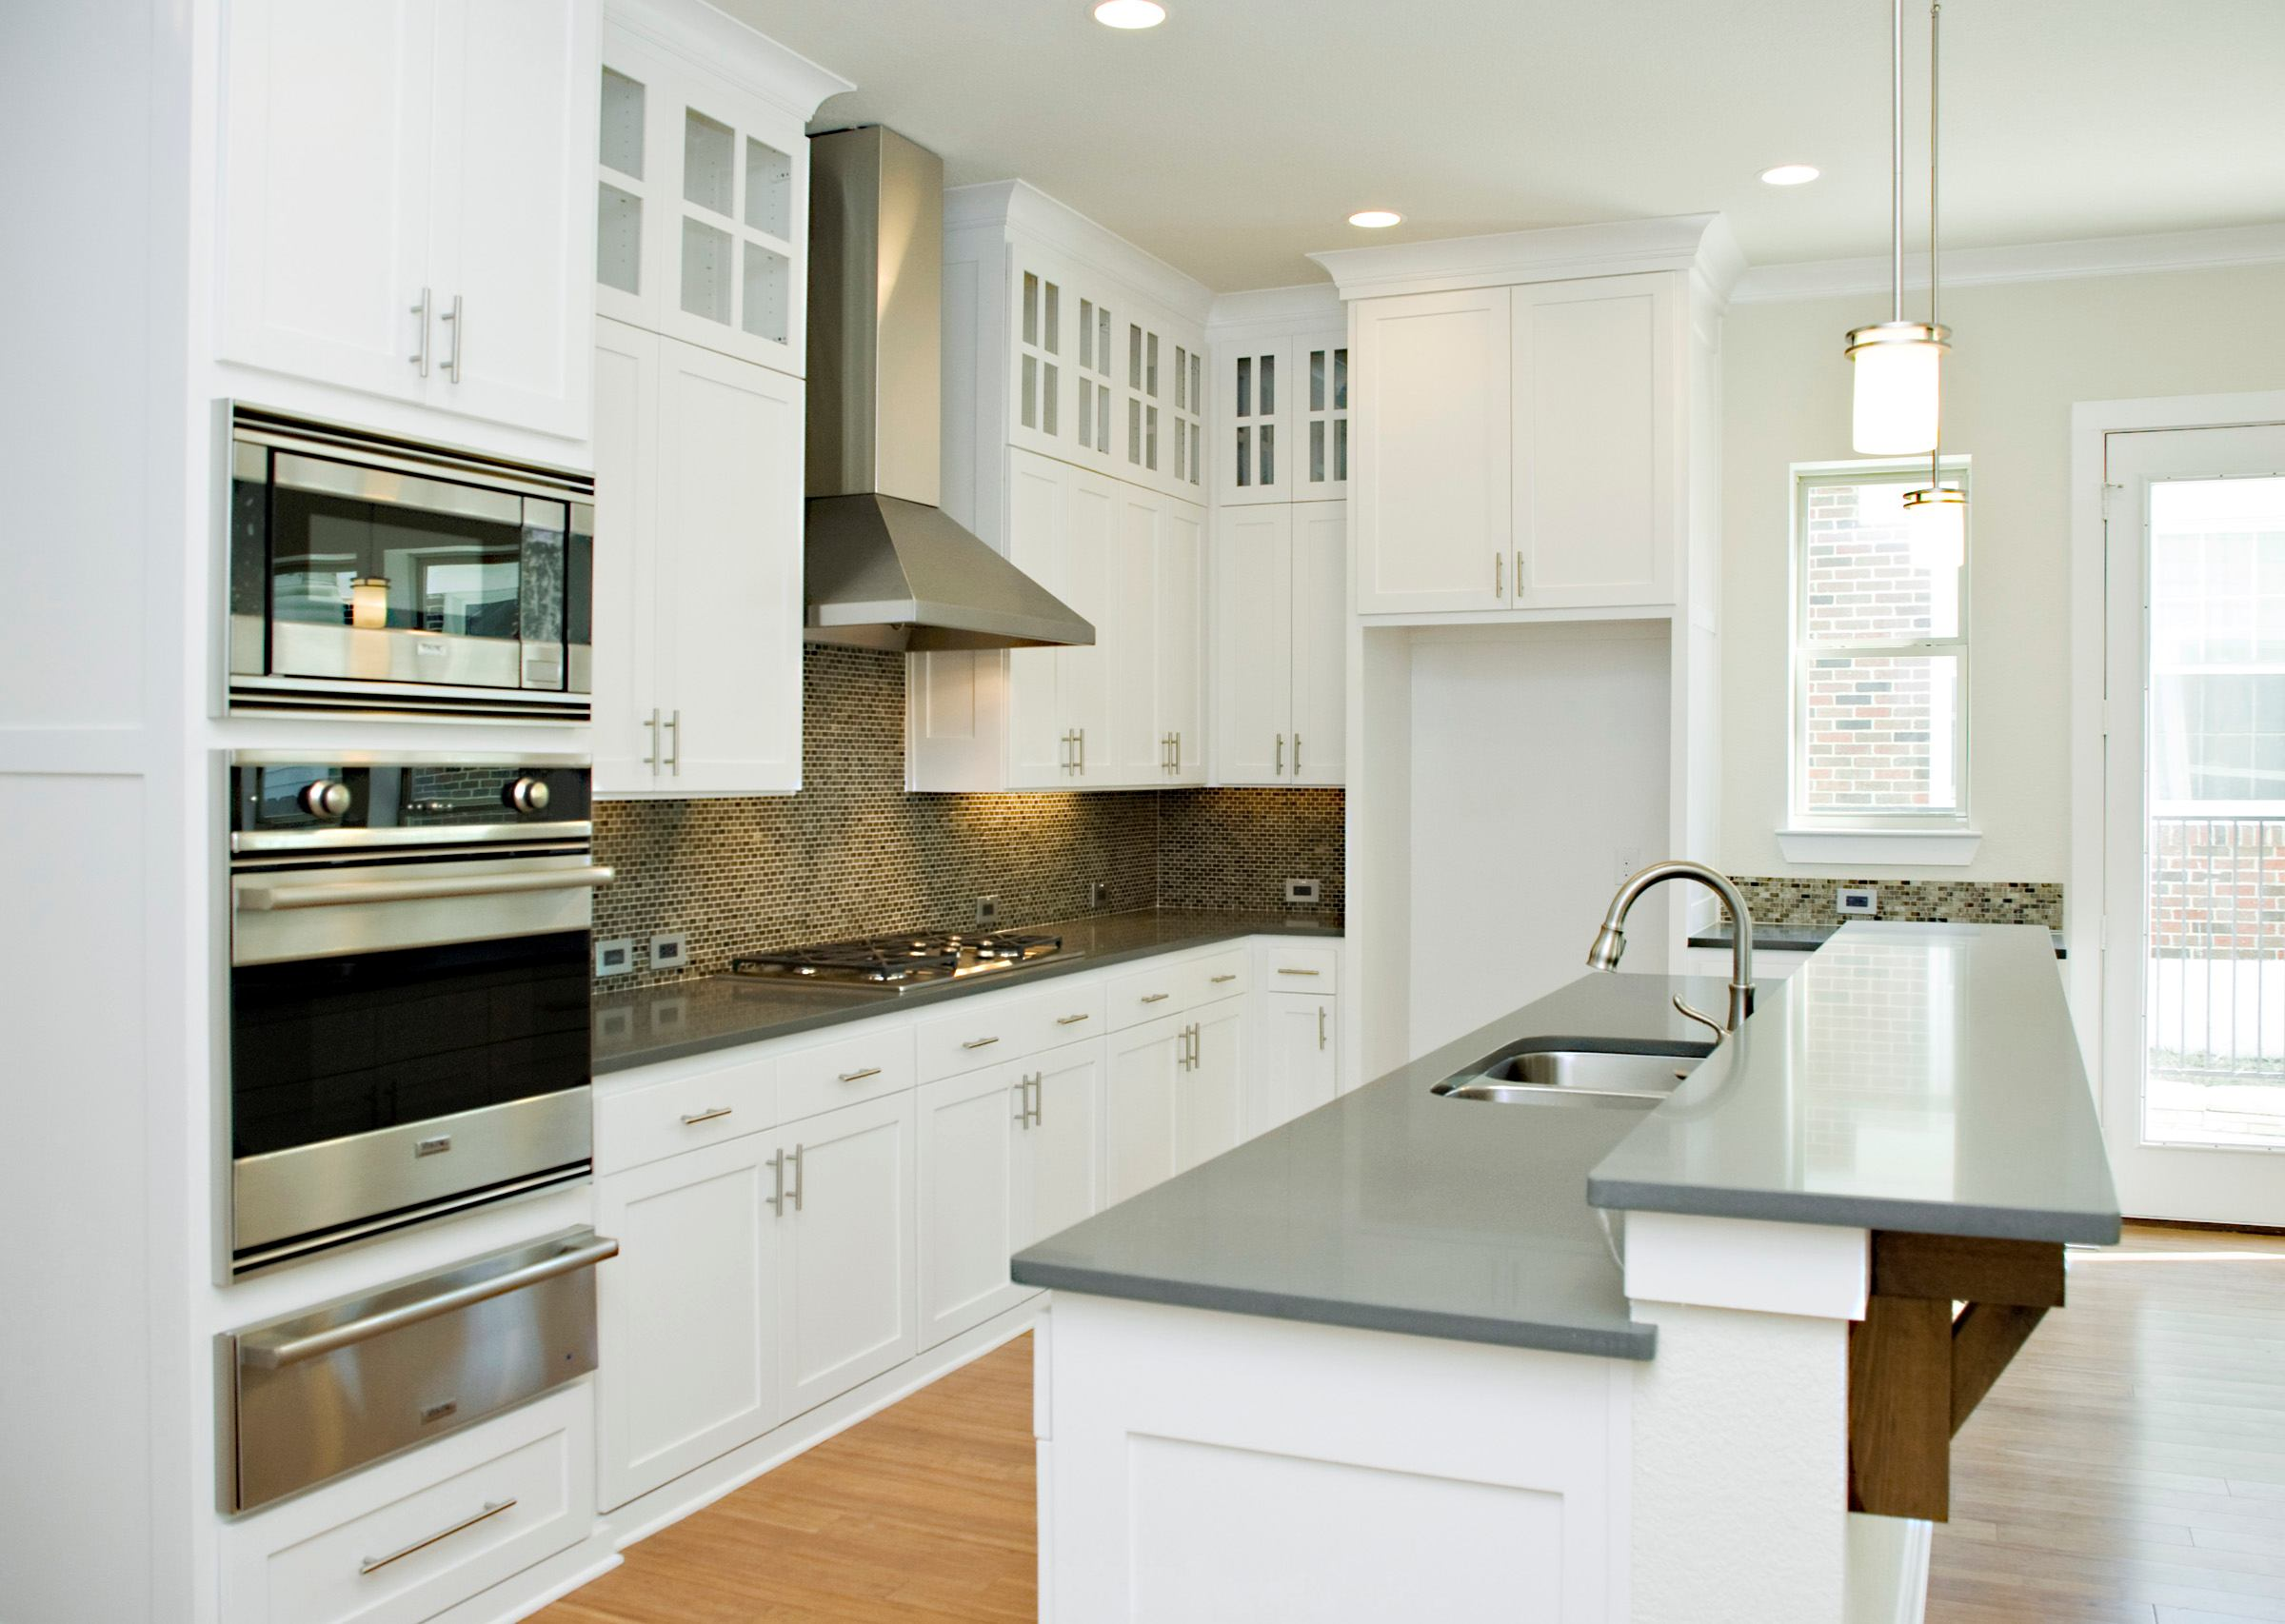 How To Clean Quartz Countertops Nkba Survey Reveals What Design Choices Are Trending In